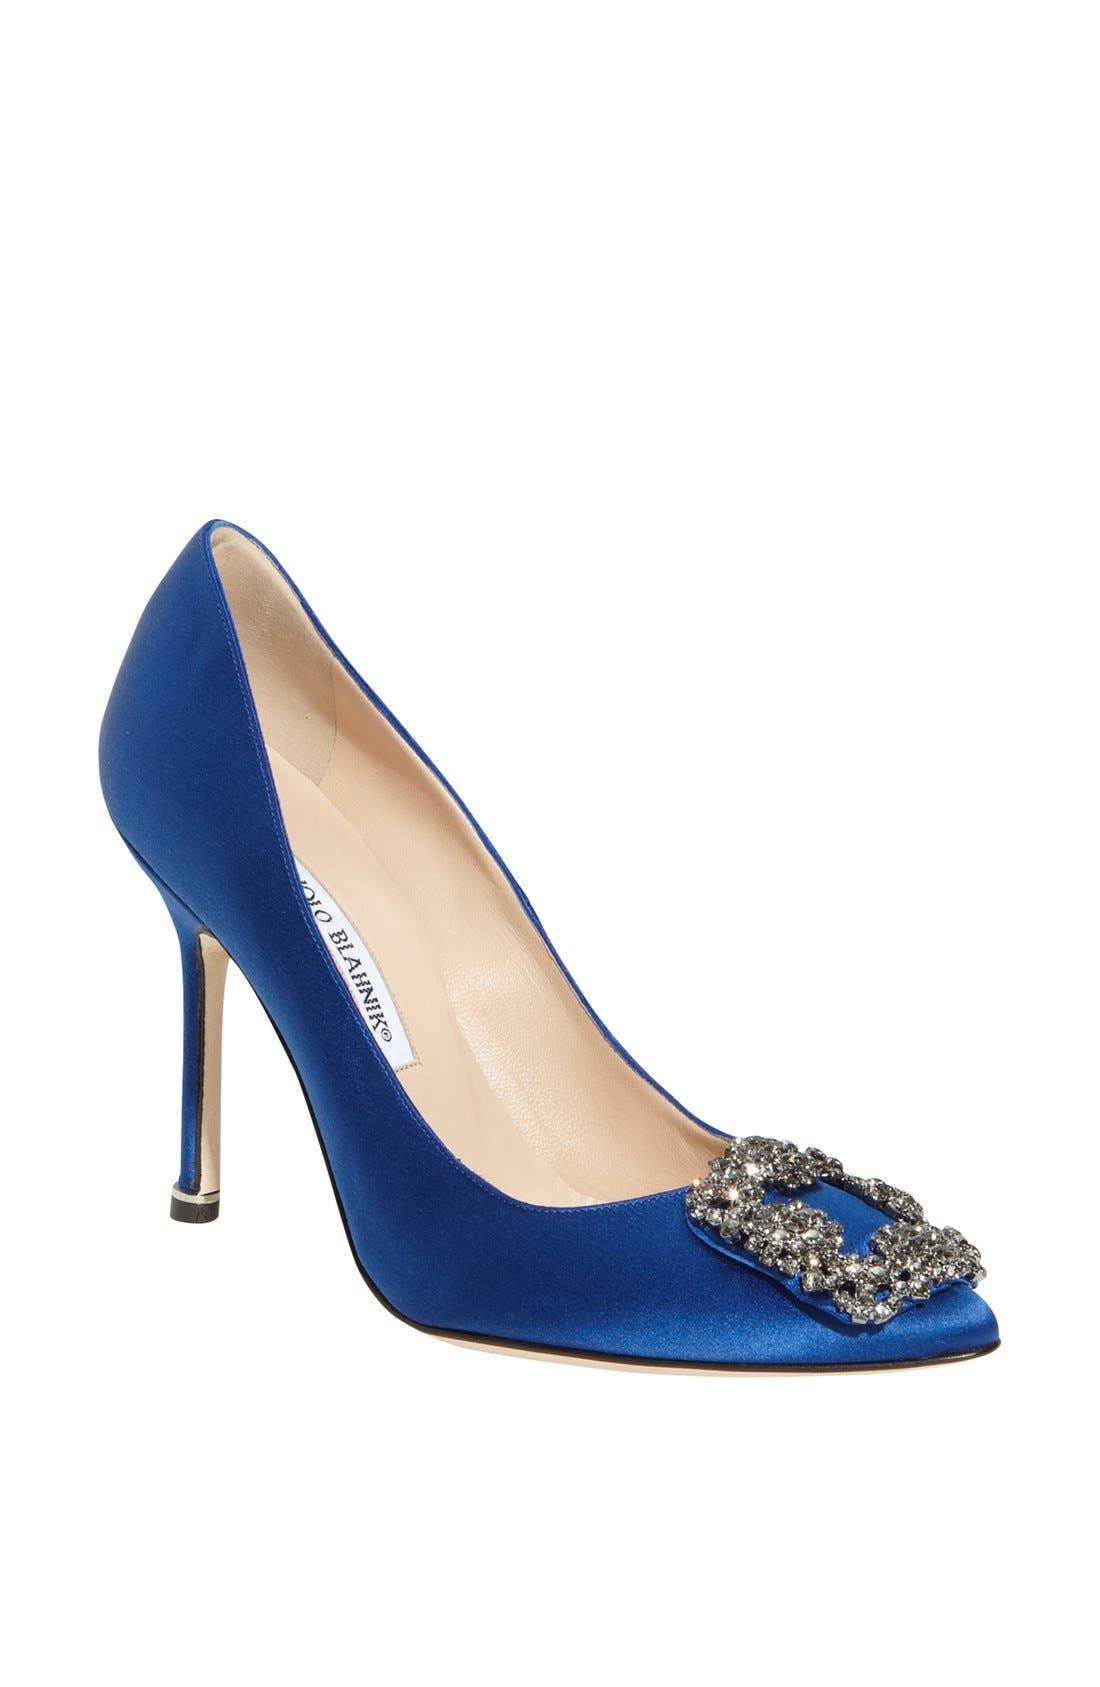 'Hangisi' Jewel Pump,                         Main,                         color, Blue Satin